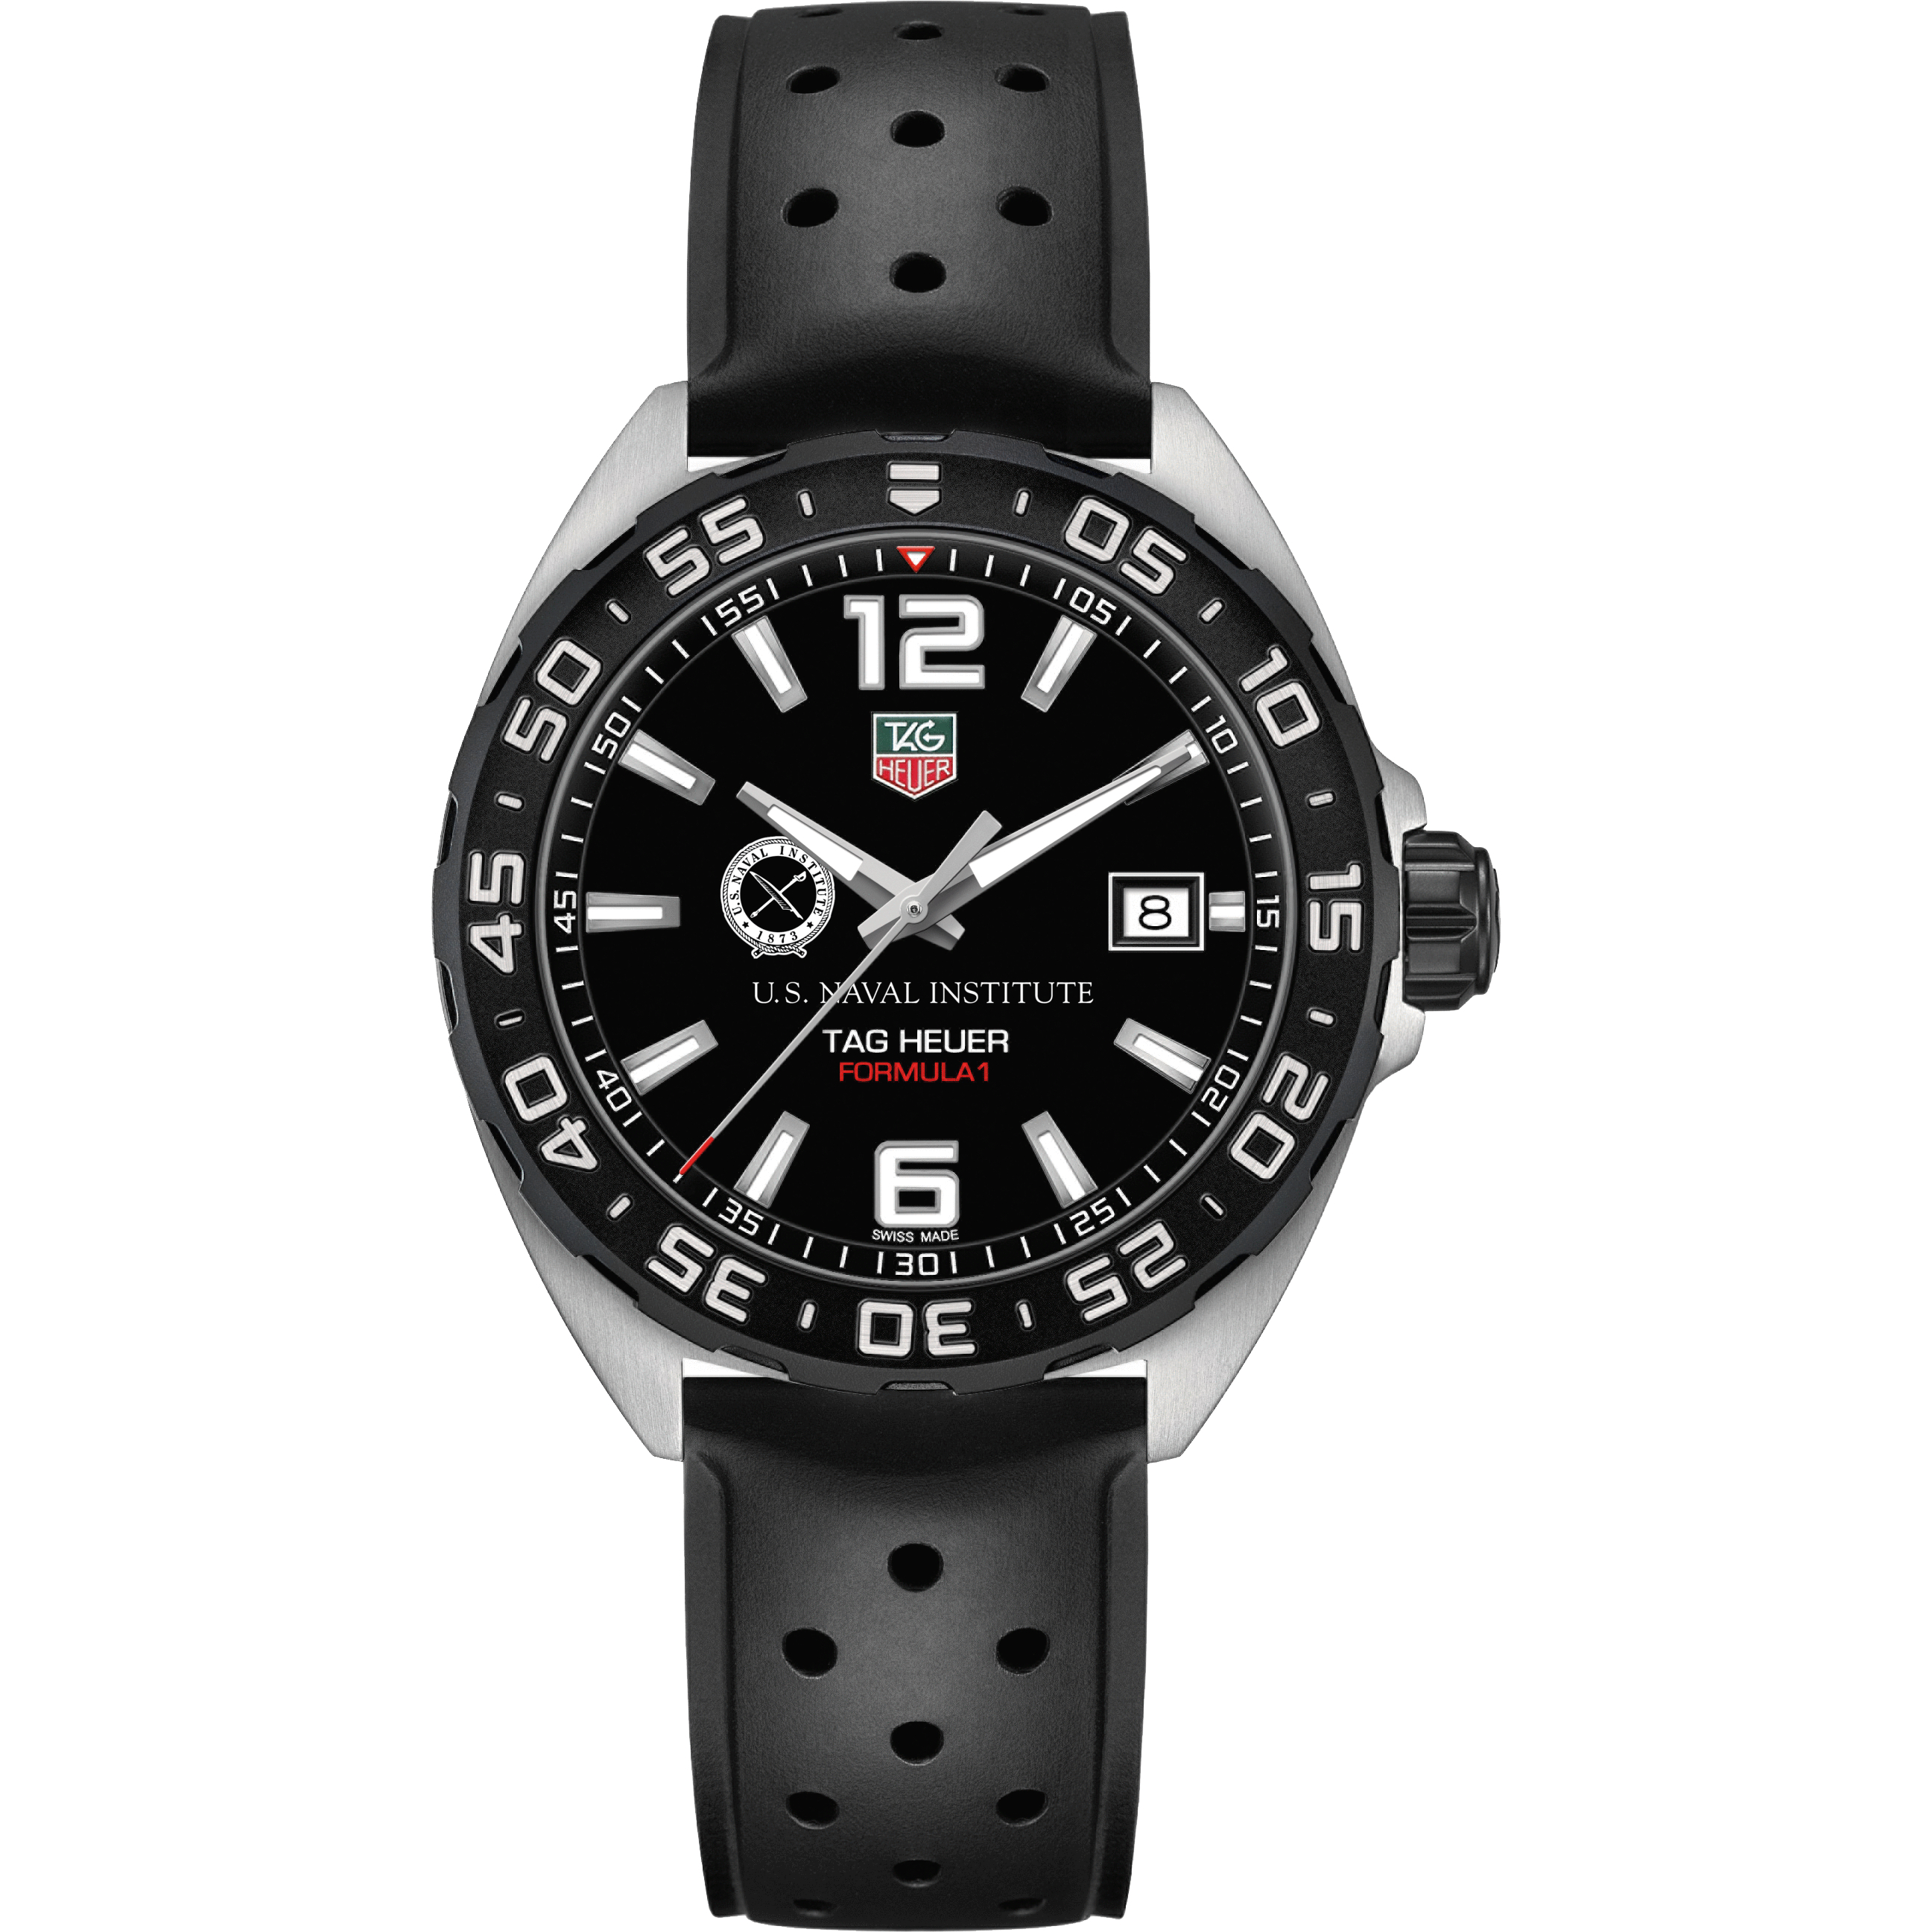 U.S. Naval Institute M's TAG Heuer Formula 1 with Black Dial - Image 2